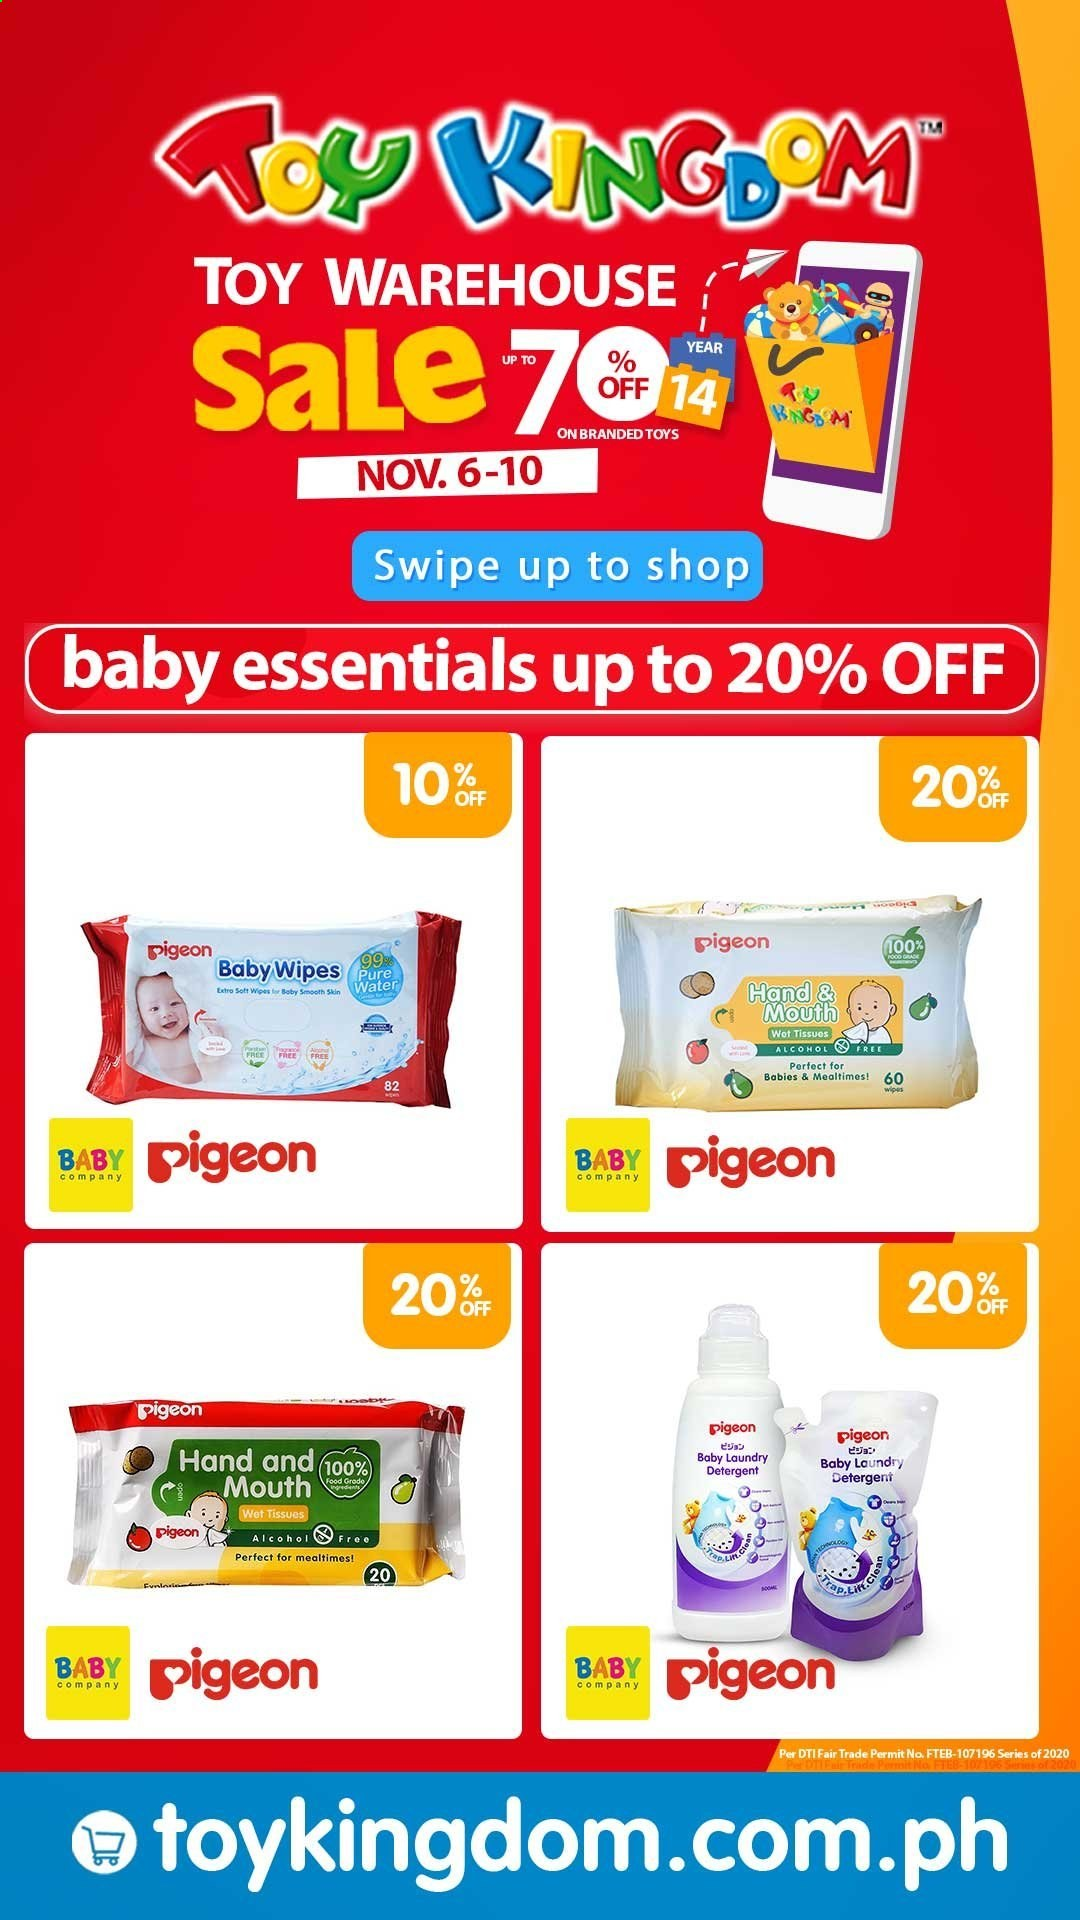 Toy Kingdom offer  - 6.11.2020 - 10.11.2020 - Sales products - baby wipes, Pigeon, bag, toys, laundry detergent. Page 1.